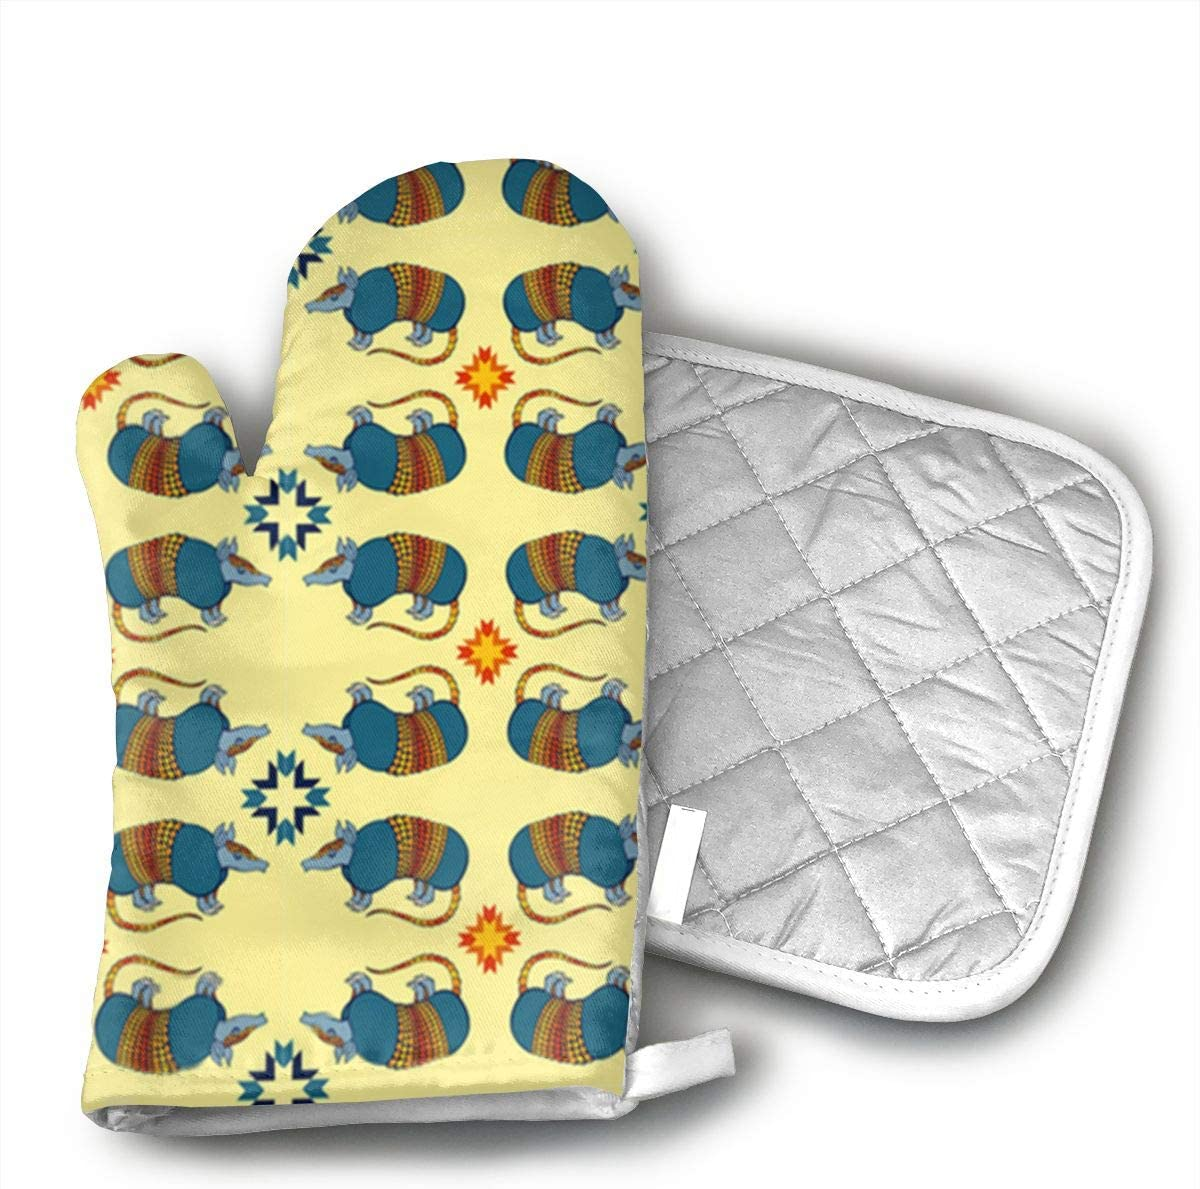 Southwestern Armadillo On Yellow Oven Mitts and hot Pot mat for Cooking Grill